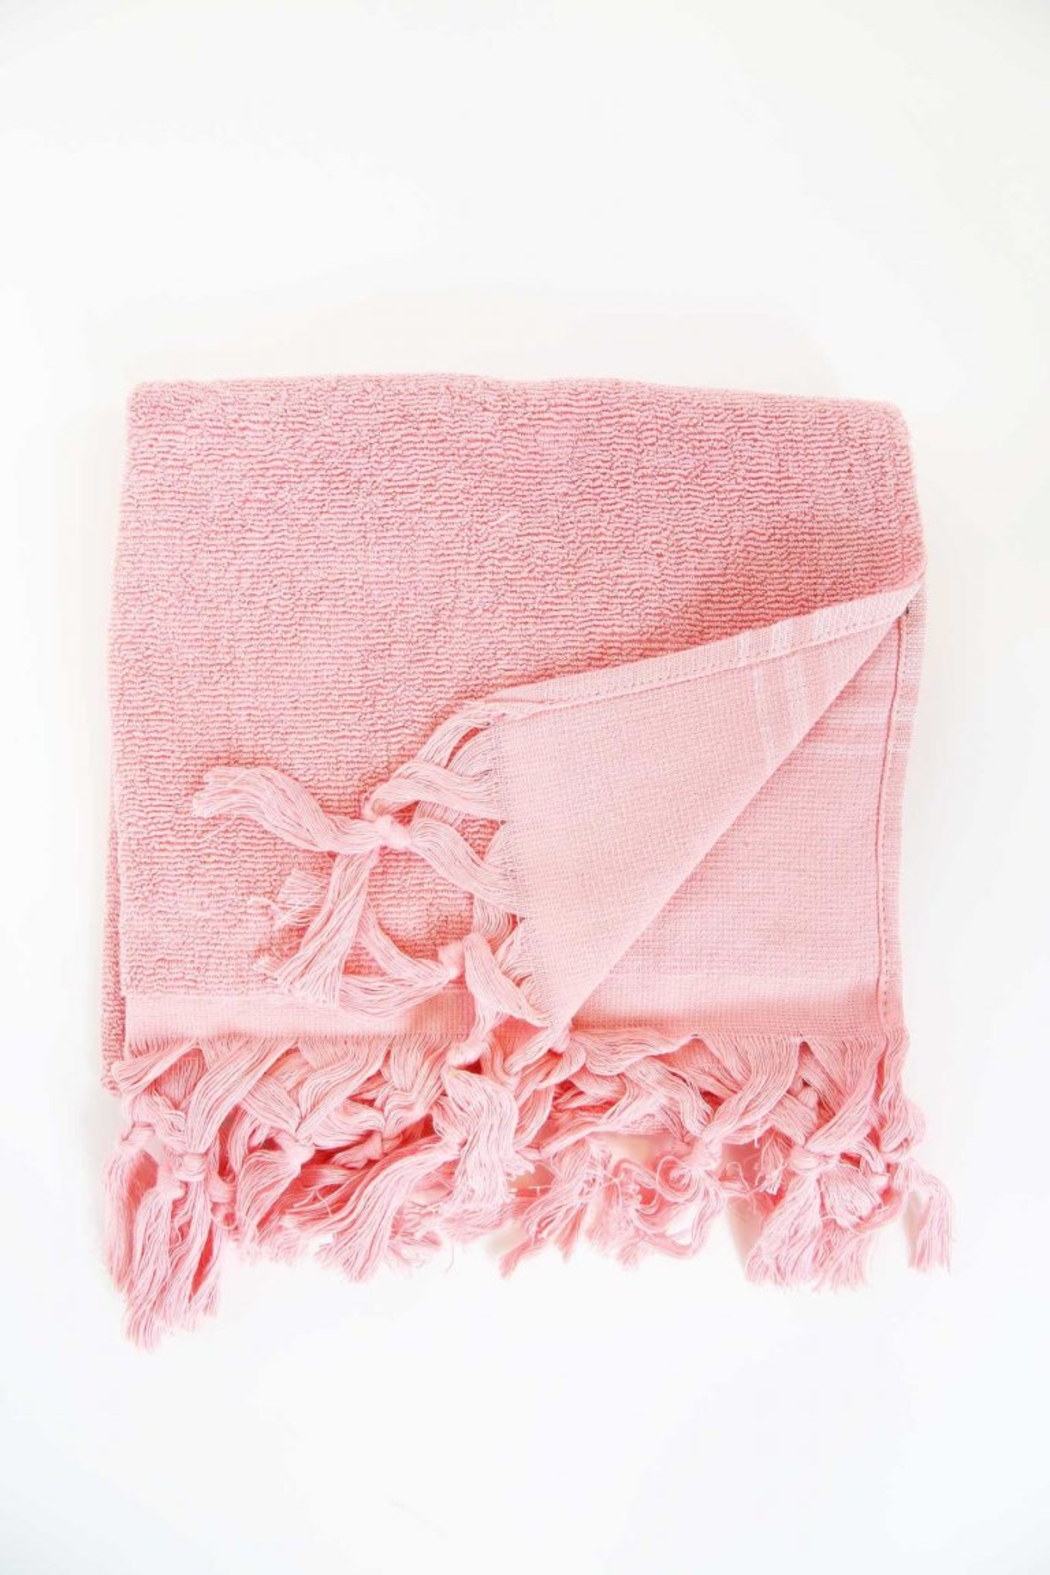 The Birds Nest GUEST TOWEL - LIGHT TERRY CANVAS (STRAWBERRY) - Main Image